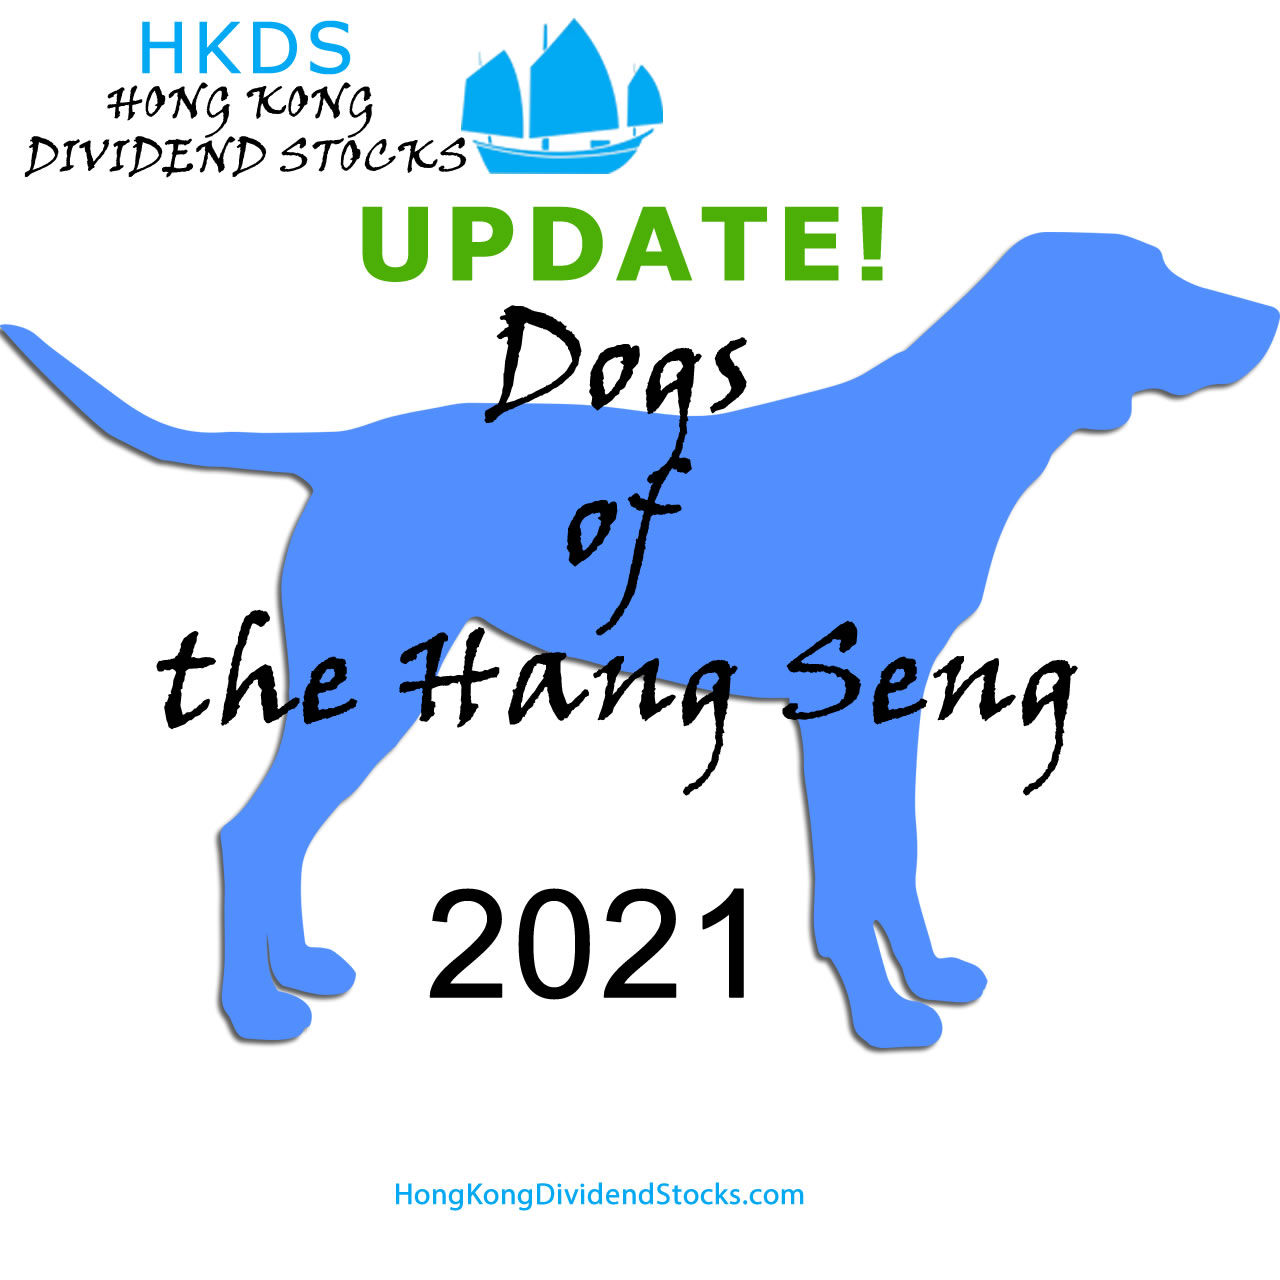 How did the Dogs of the Hang Seng 2021 do, sofar?